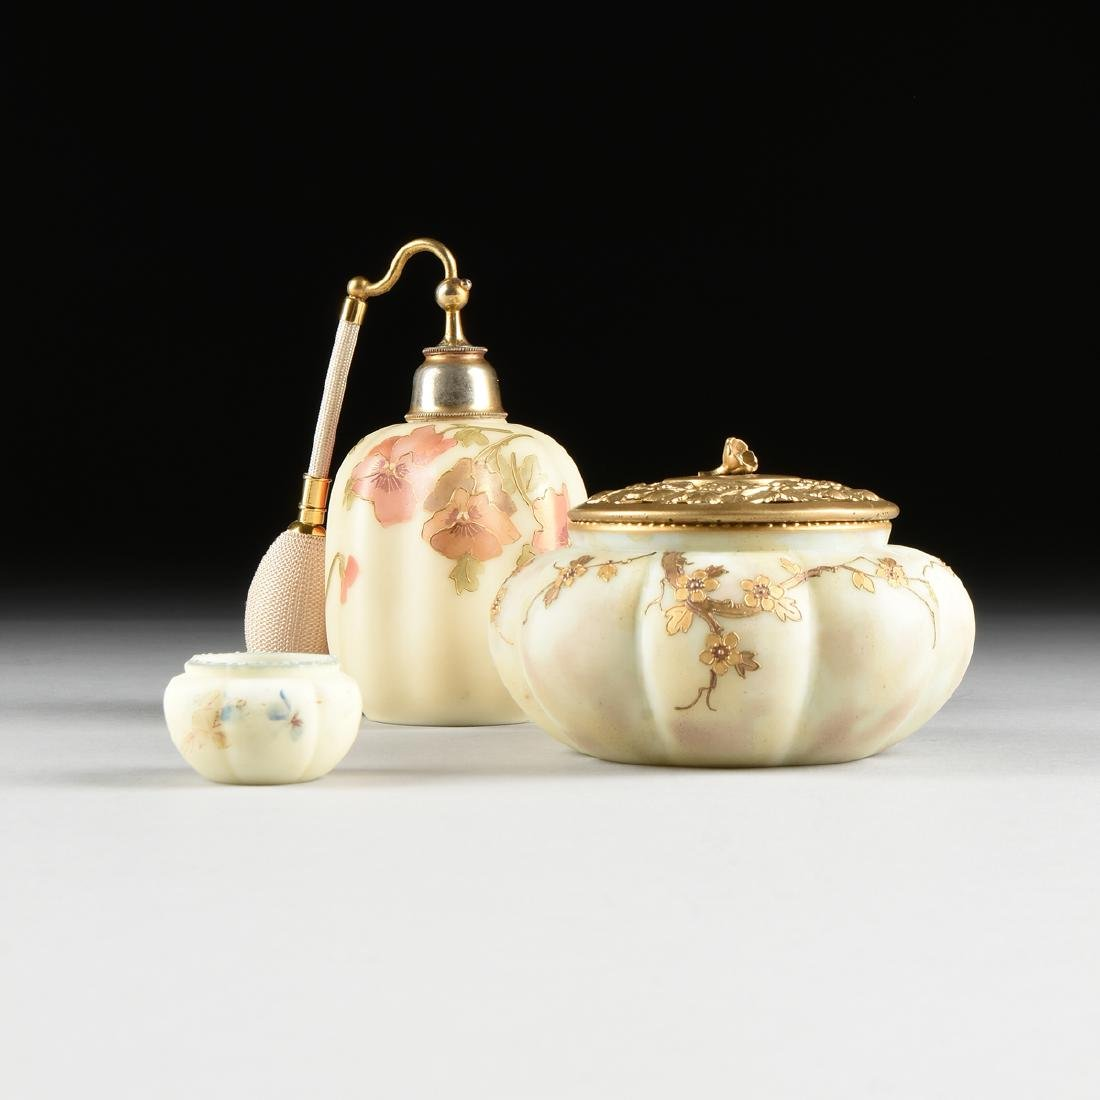 A GROUP OF THREE AMERICAN IVORY COLORED OPAL GLASS